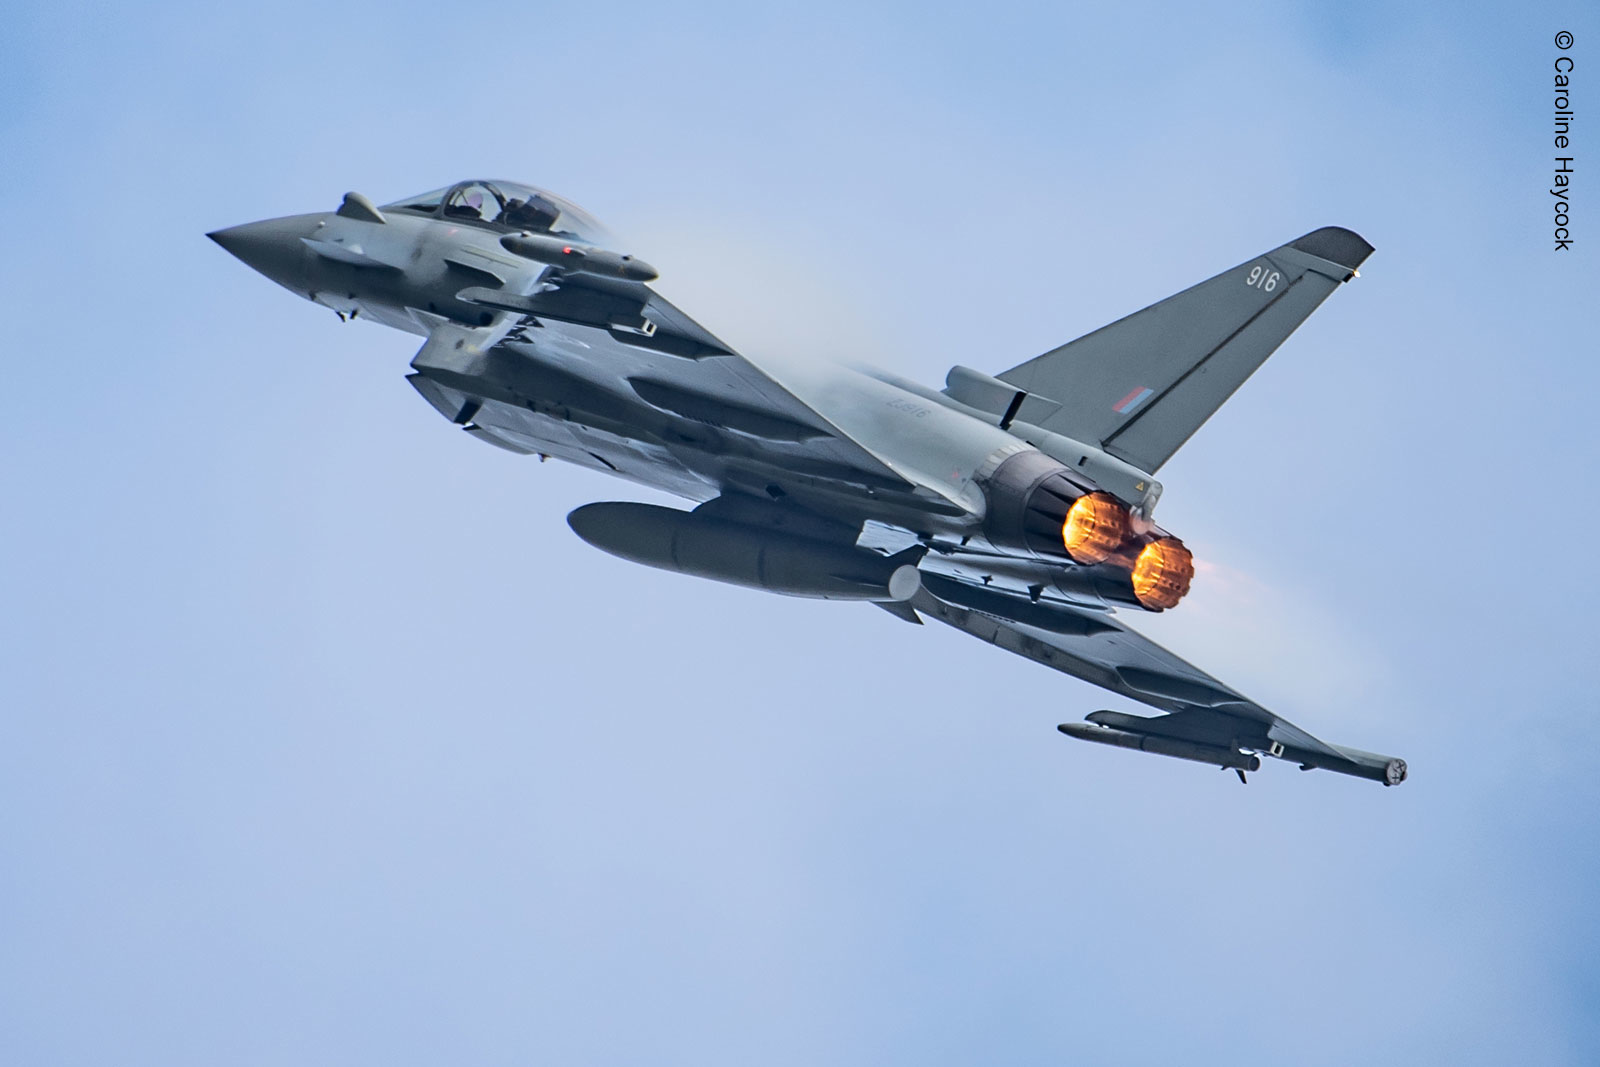 EuroDASS consortium signs contract to equip new German Typhoons with protective EW system